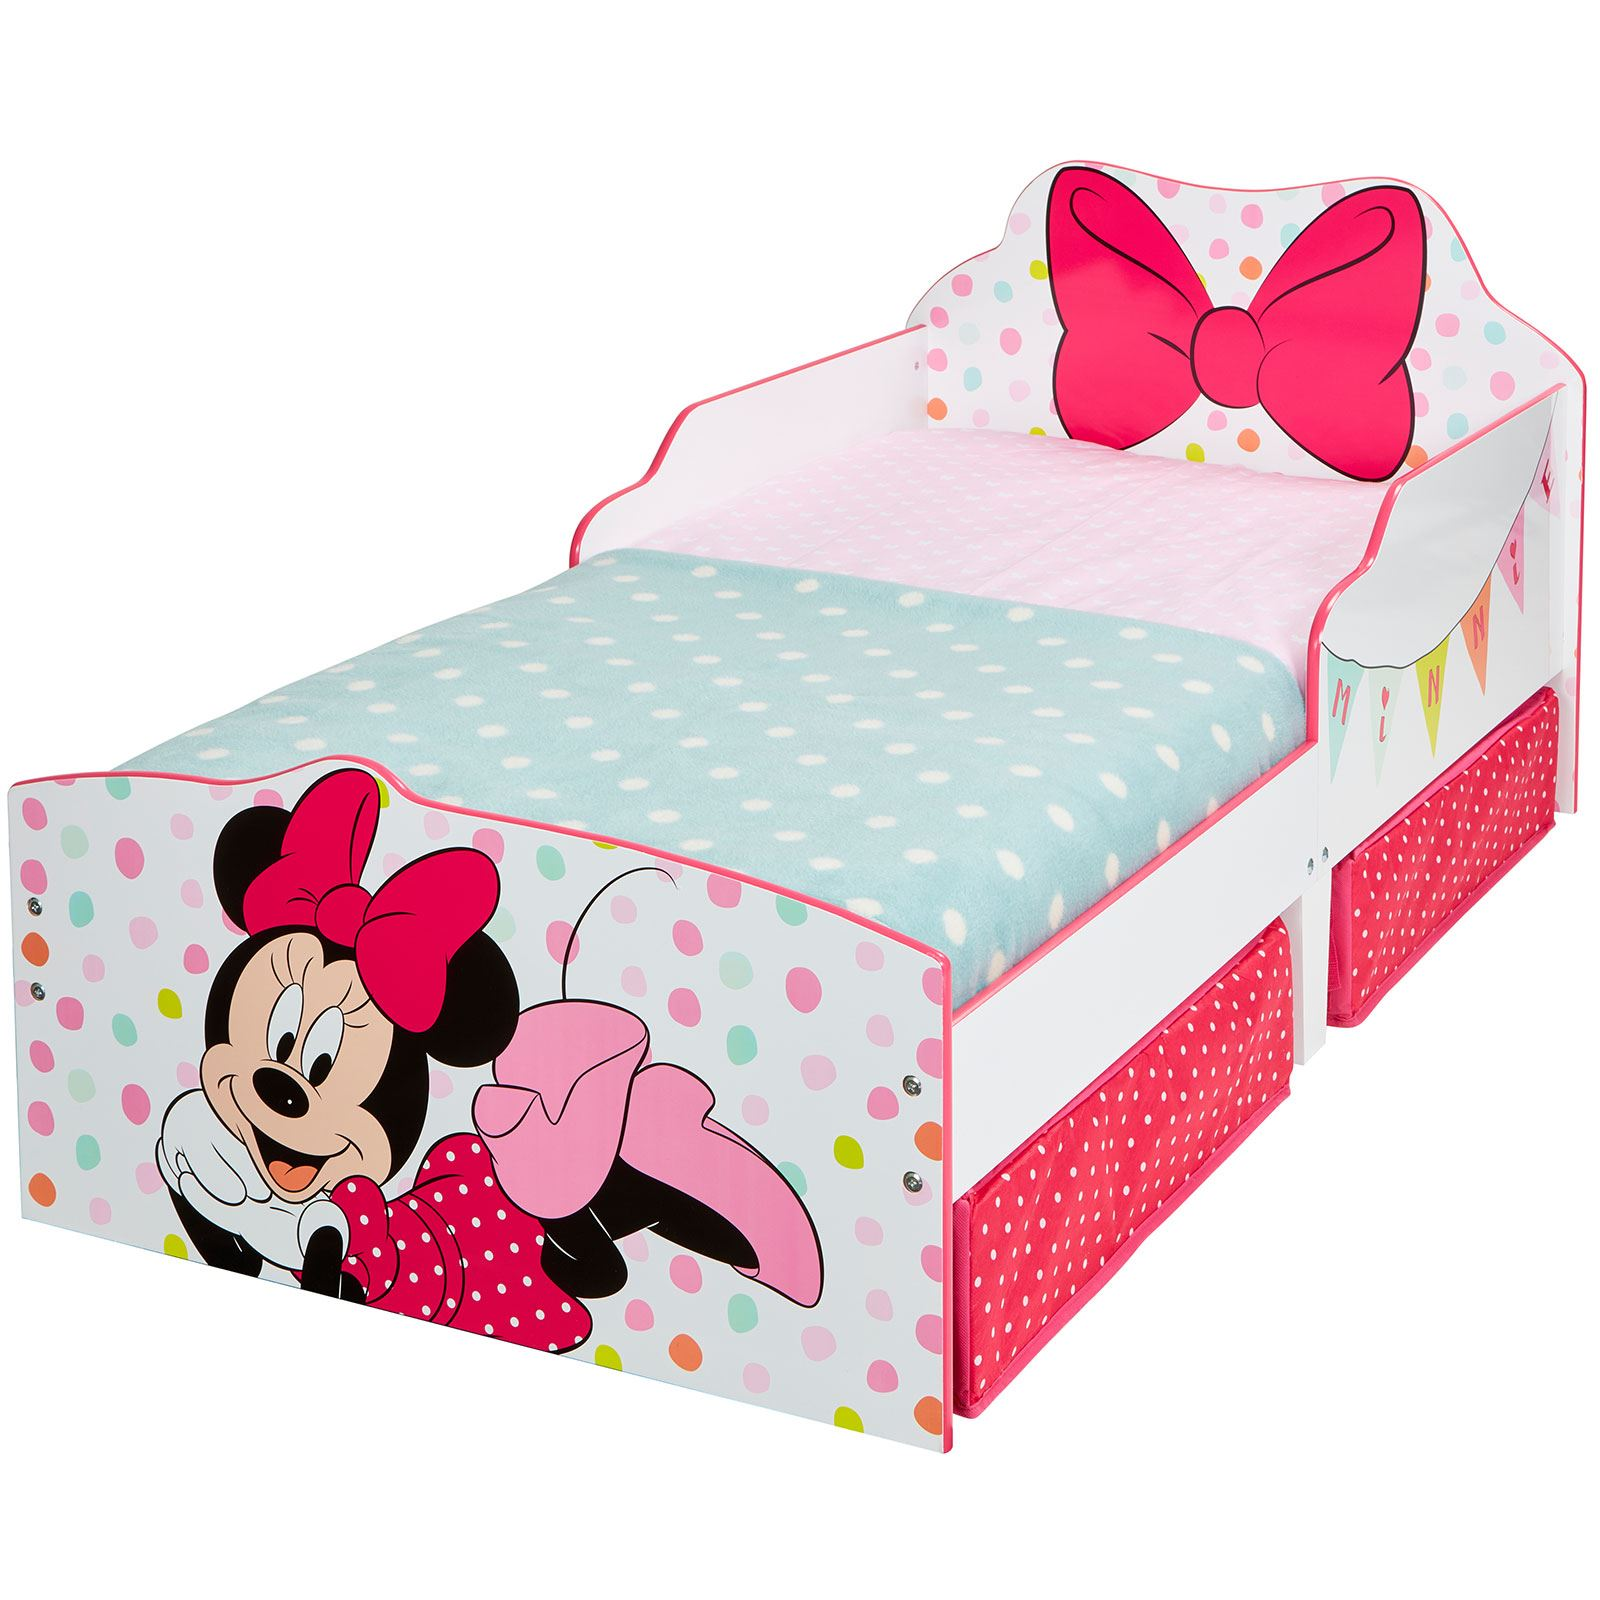 disney personnage b b junior lits avec rangement 3. Black Bedroom Furniture Sets. Home Design Ideas